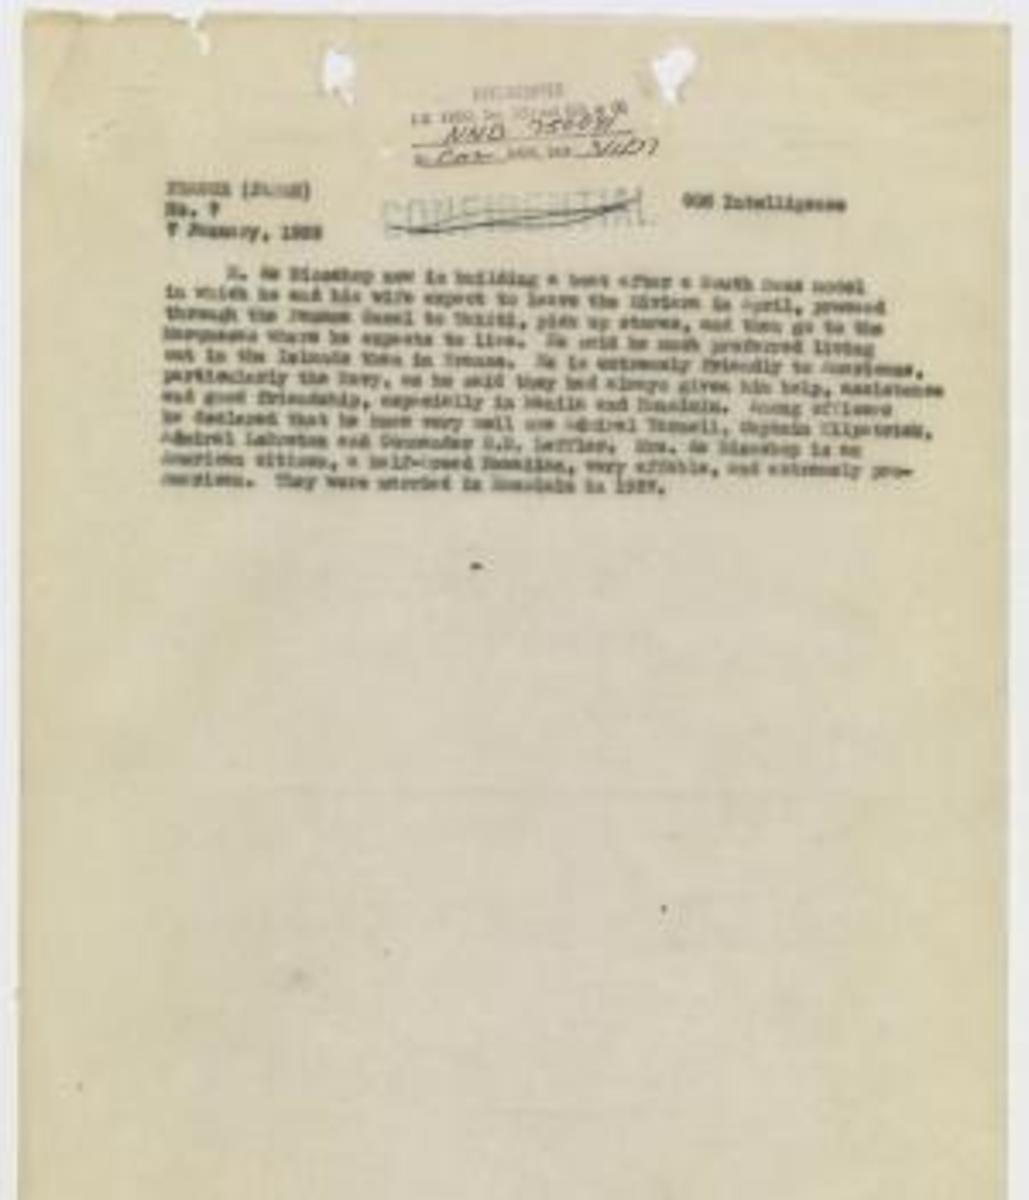 Page 3 of report, dated January 7, 1939, from the records of the Office of the Chief of Naval Operations. This document provides information that Earhart was a prisoner in the Marshall Islands. (Credit: National Archives)